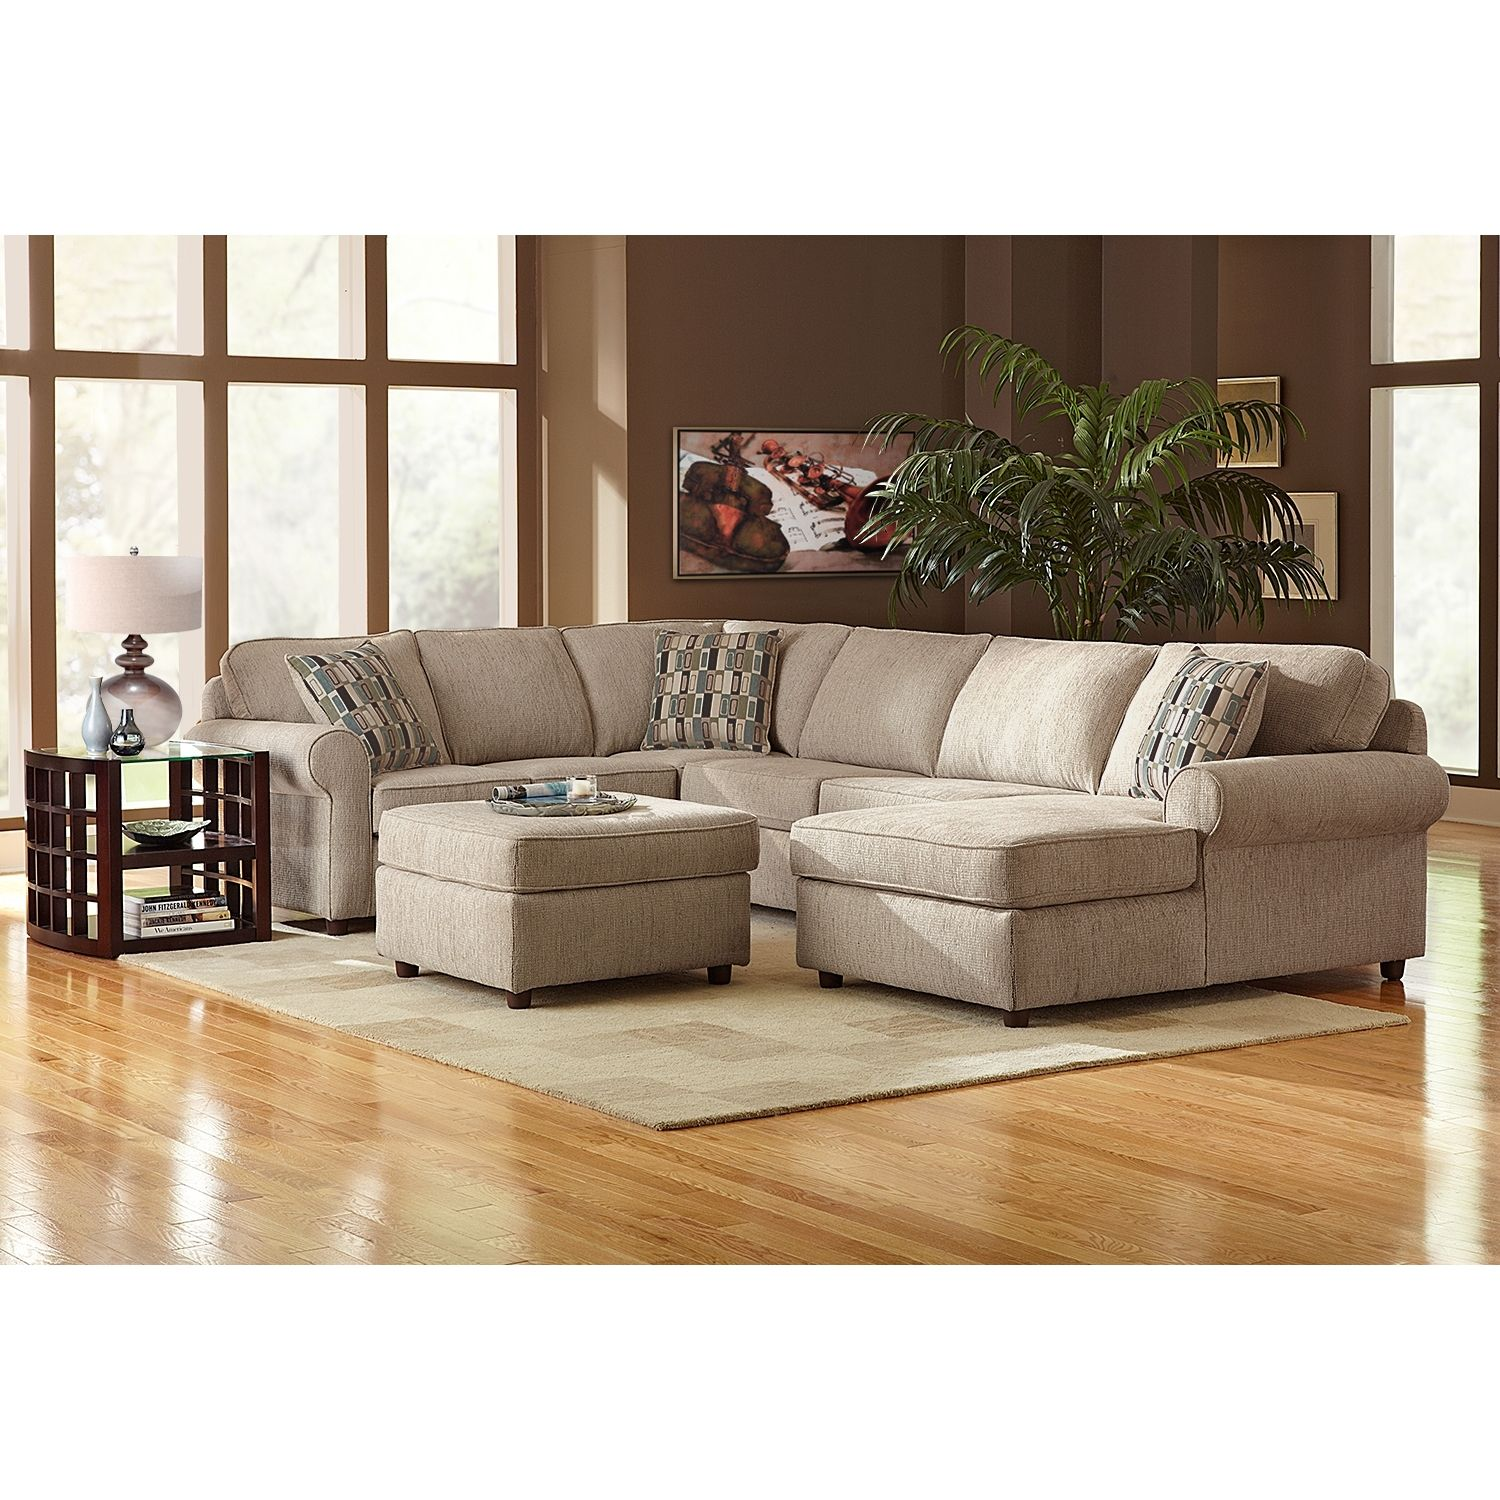 Value City Living Room Furniture Monarch Ii 3 Piece Sectional Value City Furniture Ashleigh